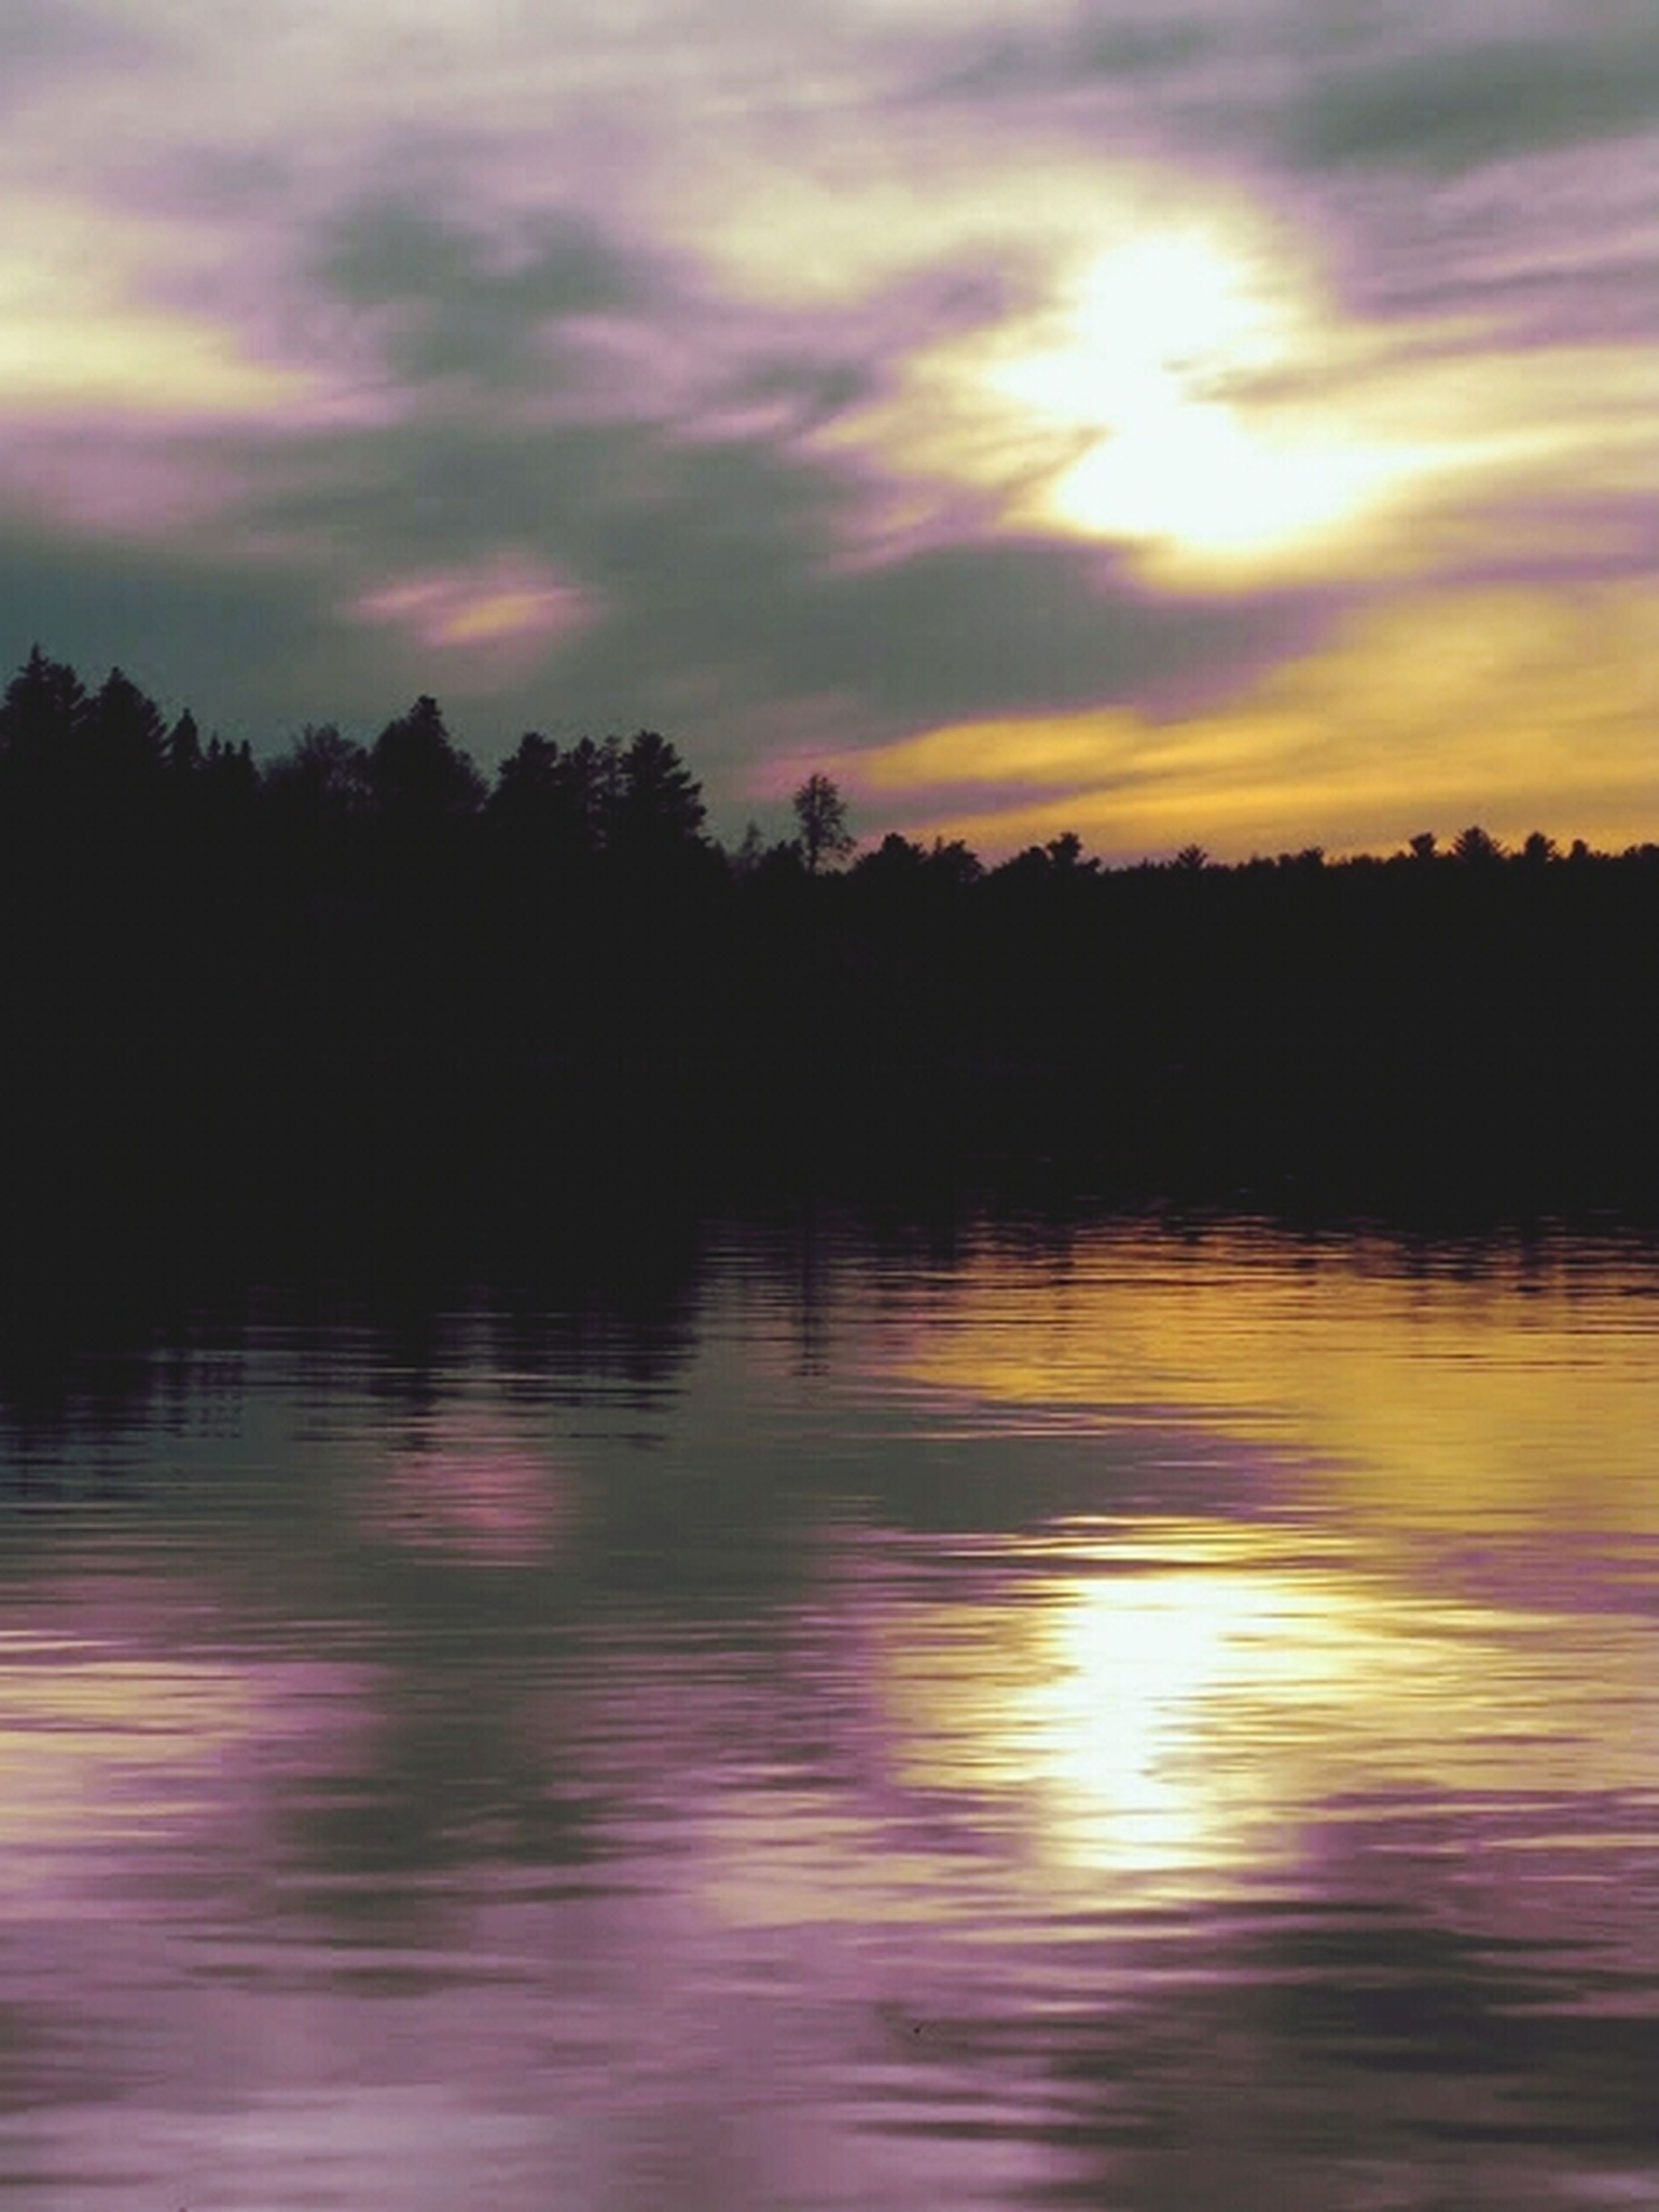 sunset, water, reflection, tranquil scene, scenics, waterfront, sky, tranquility, beauty in nature, lake, orange color, cloud - sky, tree, silhouette, idyllic, nature, dramatic sky, cloud, rippled, outdoors